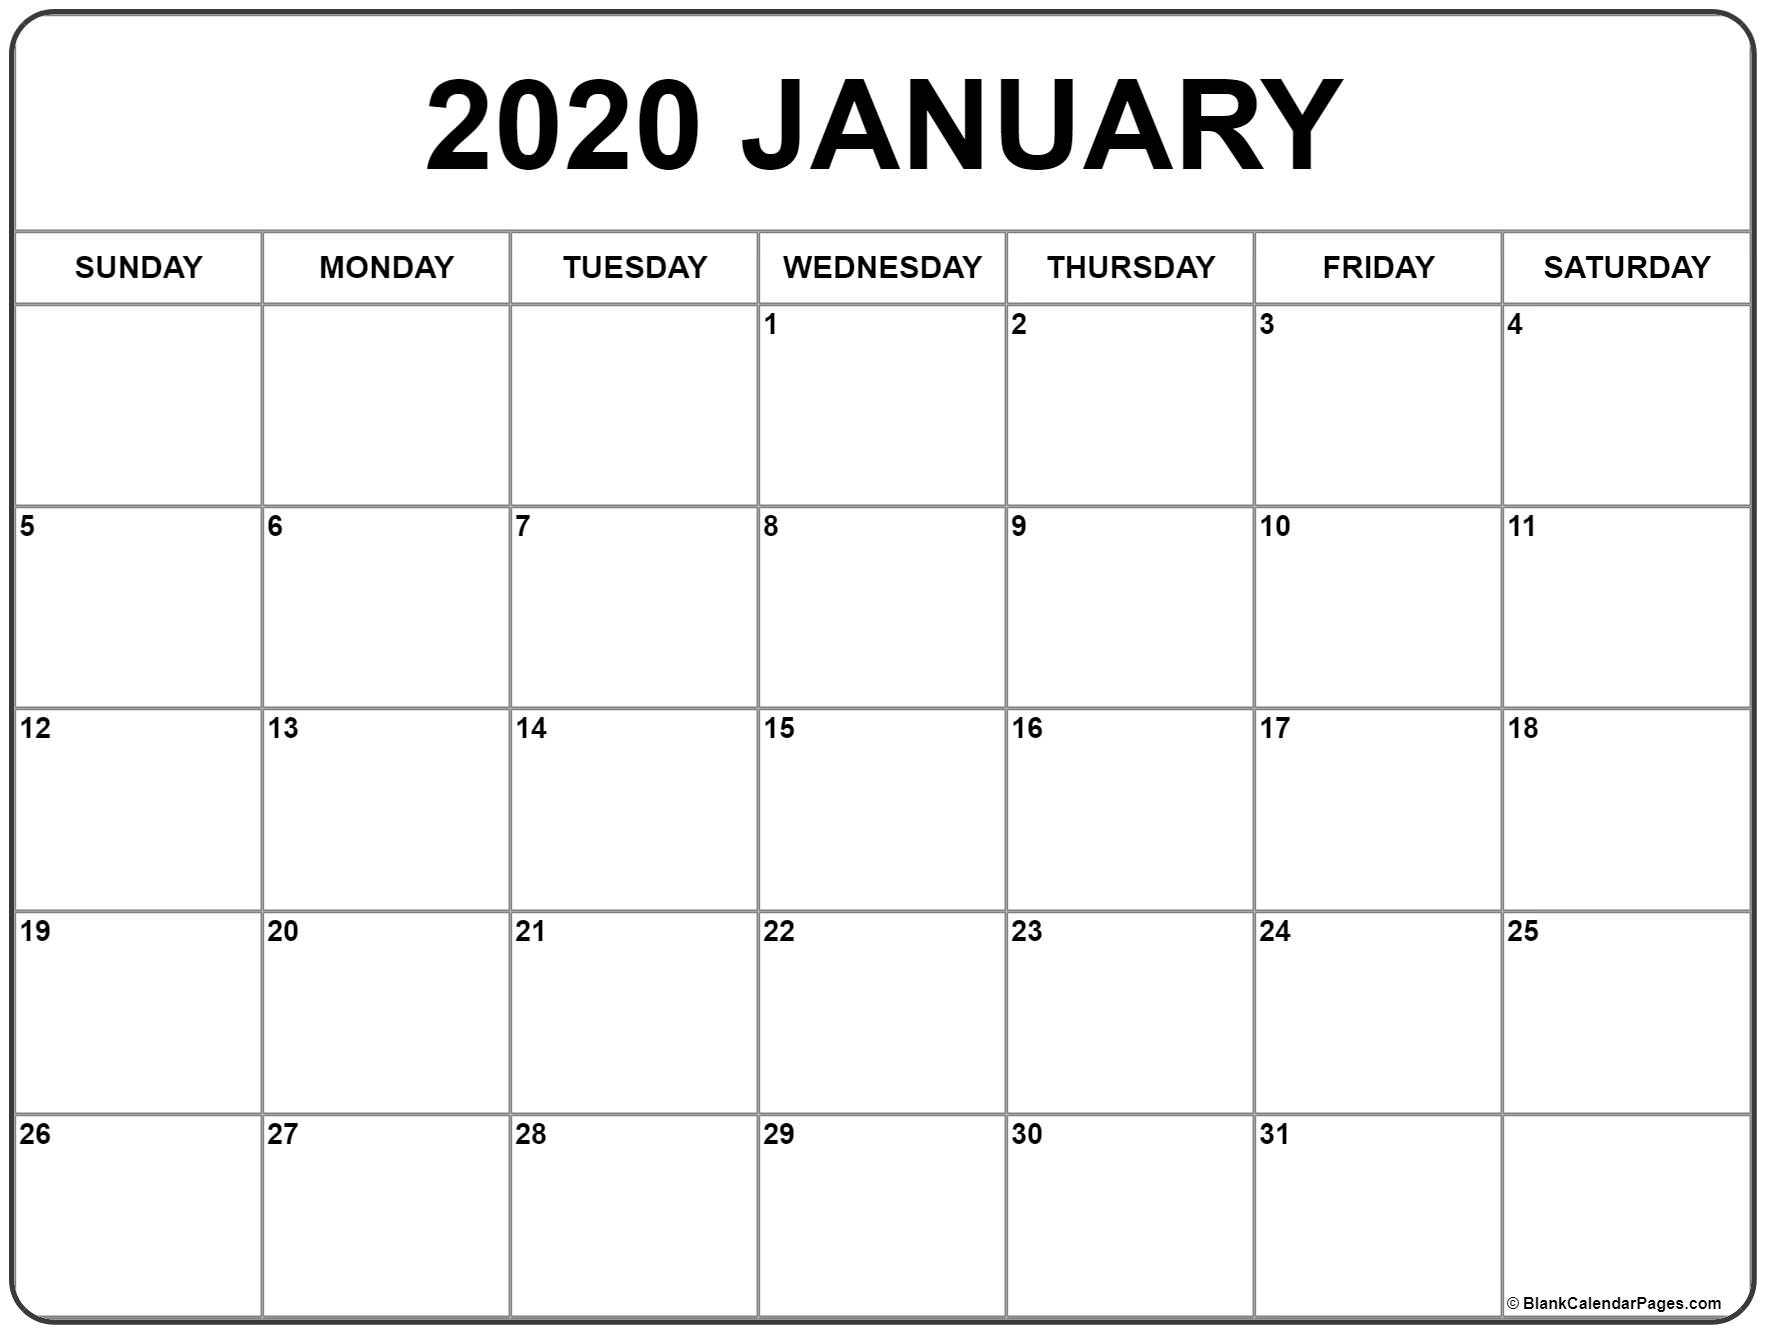 January 2020 Calendar | Free Printable Monthly Calendars pertaining to January 2020 Calendar Blank